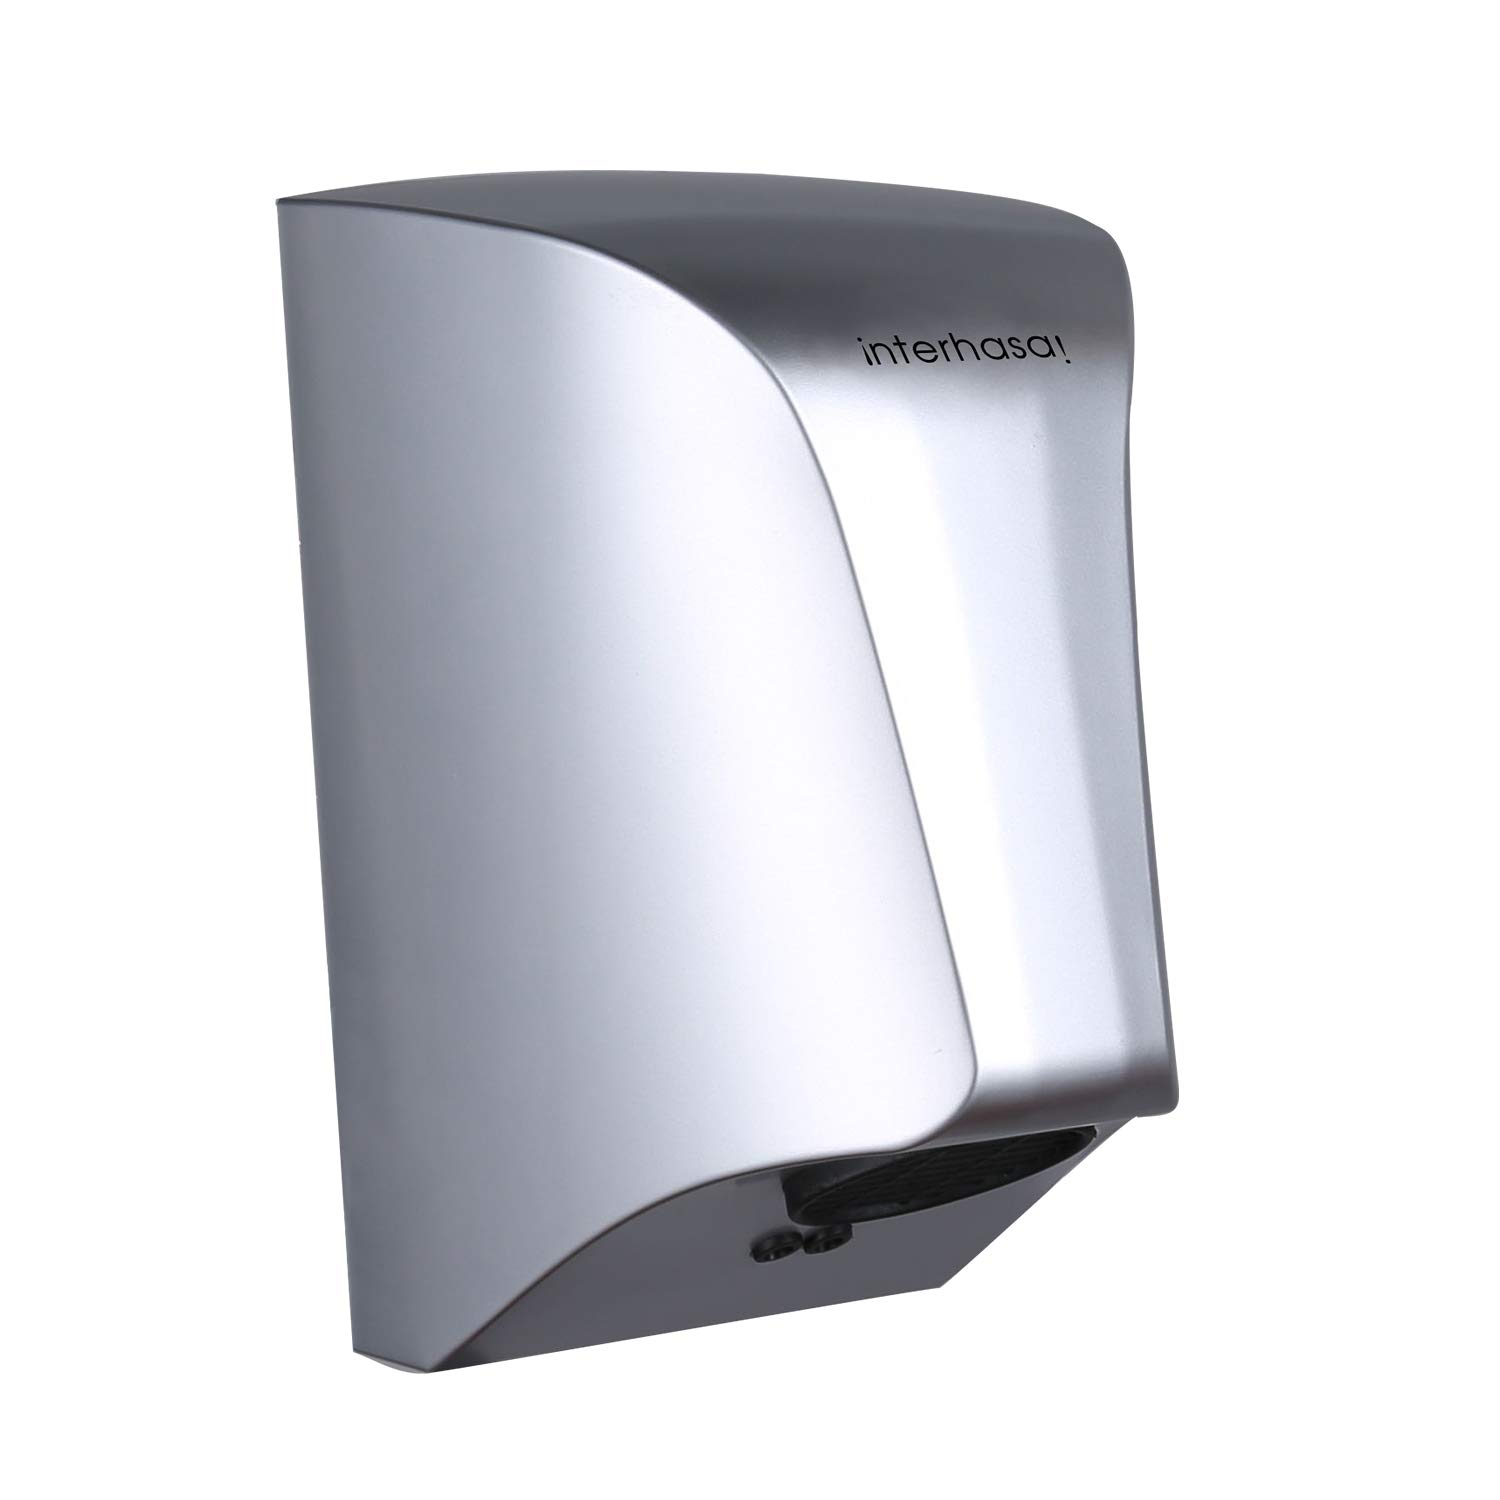 interhasa! Wall Mounted Hand Dryer,Commercial Bathroom Hand Dryer, Low Noise 50dB,Powerful 800W (Silver) by interhasa!